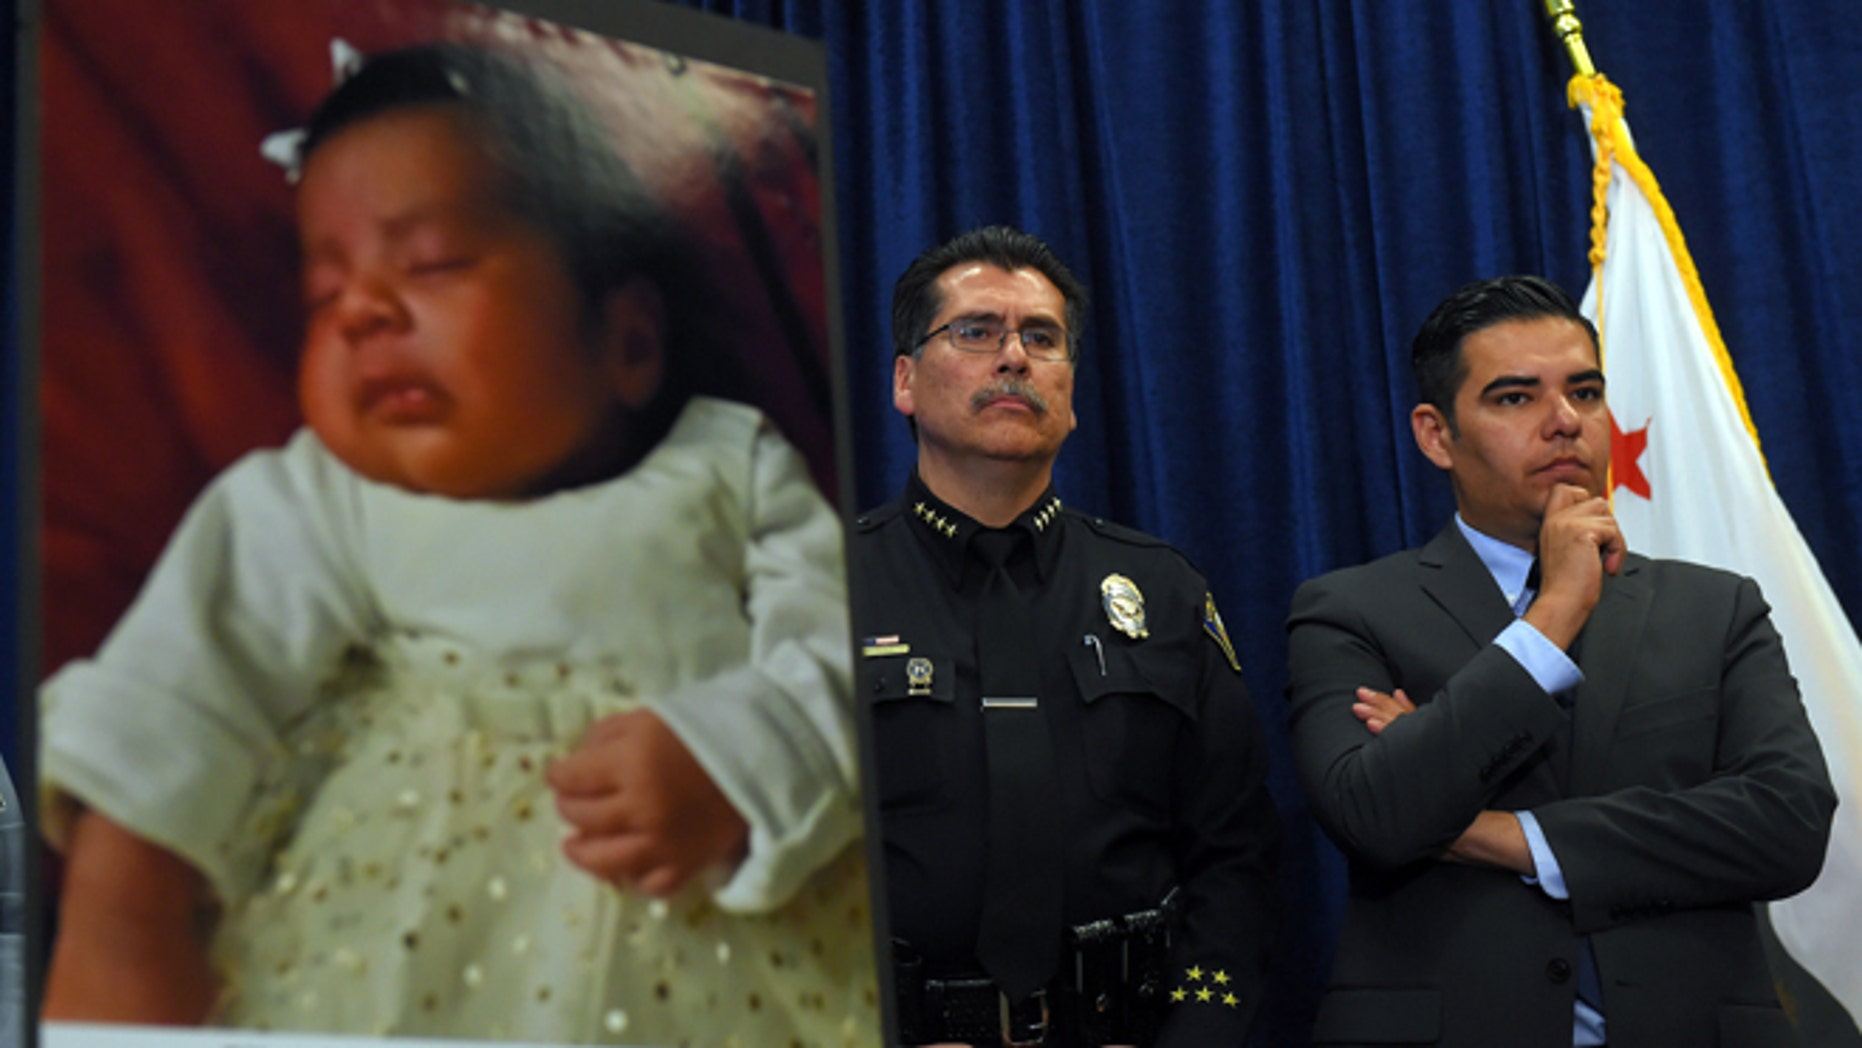 Long Beach Police Chief Robert Luna, left, and Mayor Robert Garcia stand during a news conference in Long Beach, Calif., Wednesday, March 25, 2015. Southern California authorities have arrested four people in a plot to kidnap two newborn babies. The plot ended with the death of a 3-week-old girl and the shooting and beating of the childrens mothers, police said Wednesday. At left is an image of baby Eliza Delacruz, who was snatched Jan. 3, 2015, in Long Beach by a gunman who wounded her parents and uncle, Luna said. Her body was found the next day in a trash bin near the Mexican border. (AP Photo/The Daily Breeze, Scott Varley)  MAGS OUT; NO SALES